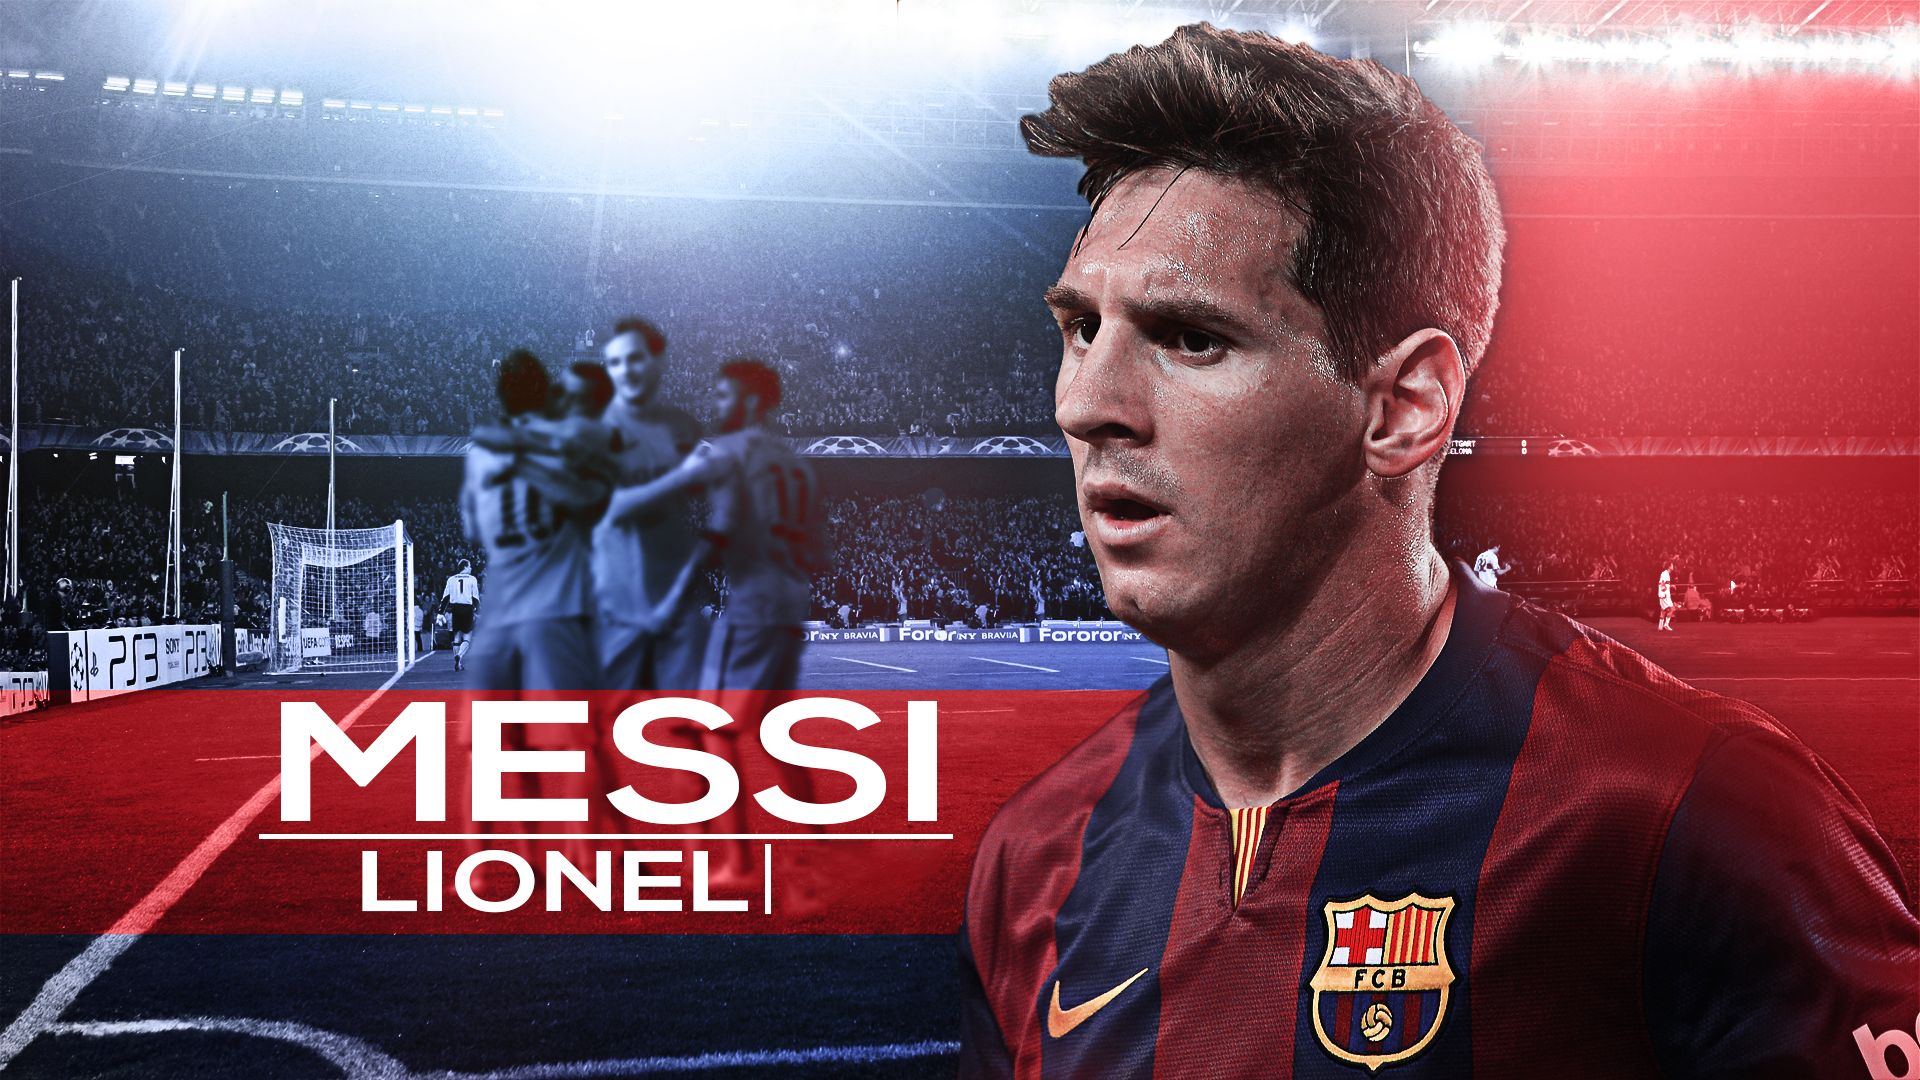 Lionel Messi Wallpapers 4K Ultra HD